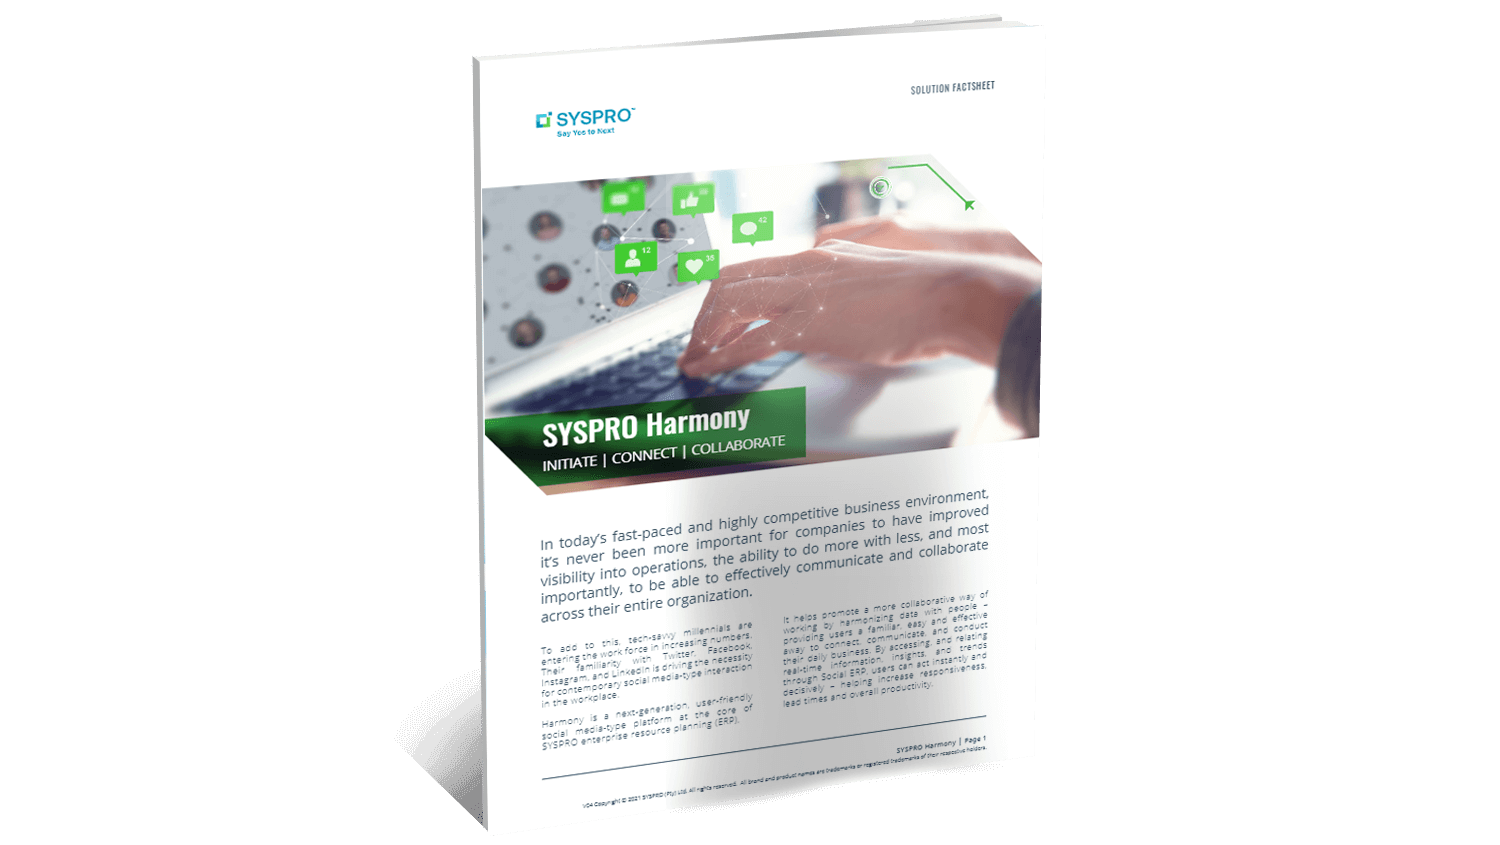 SYSPRO-ERP-software-system-syspro-harmony-factsheet